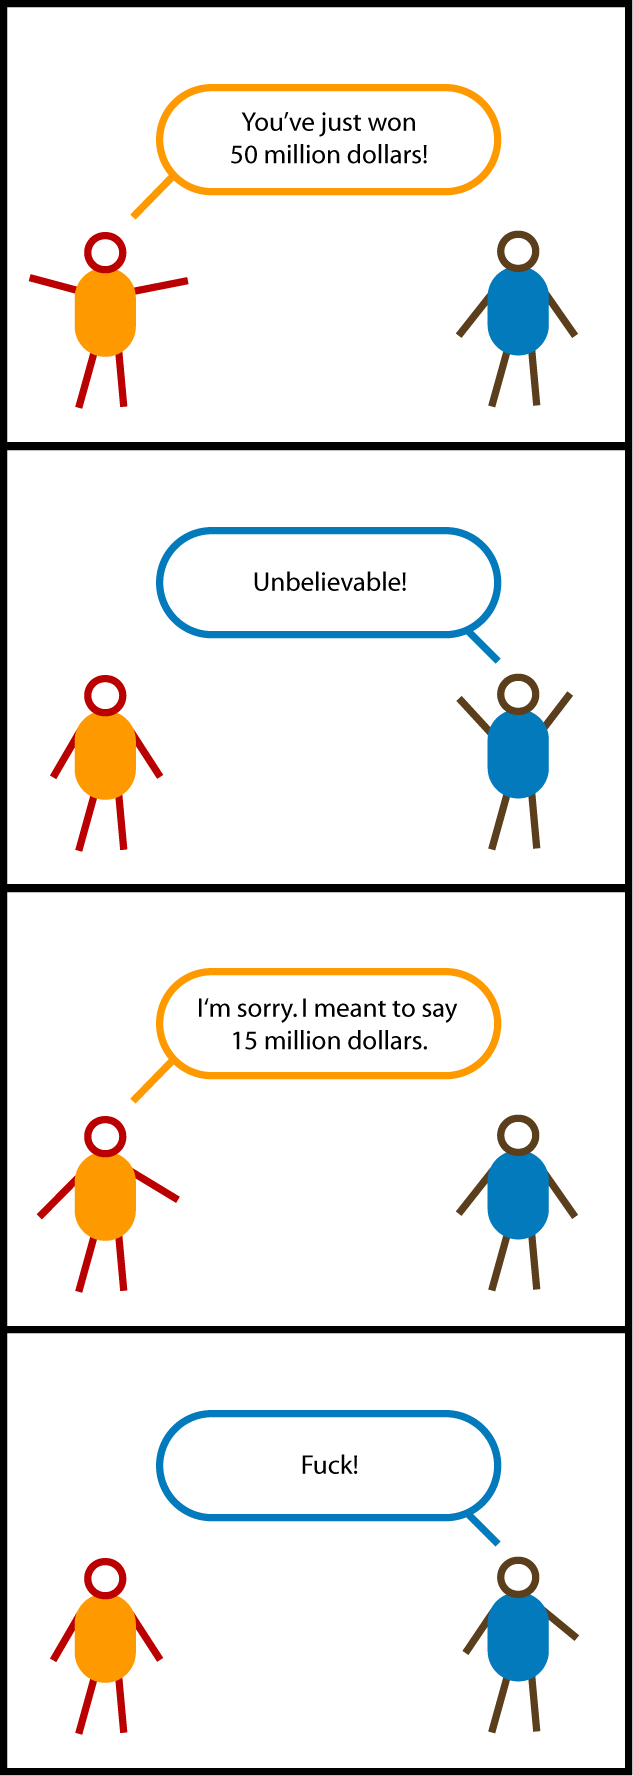 "In this cartoon, the first guy says, ""You've just won 50 million dollars!"" The second guy says, ""Unbelievable!"" The first guy corrects himself: ""I'm sorry. I meant to say 15 million dollars."" The second guy says, ""Fuck!"""